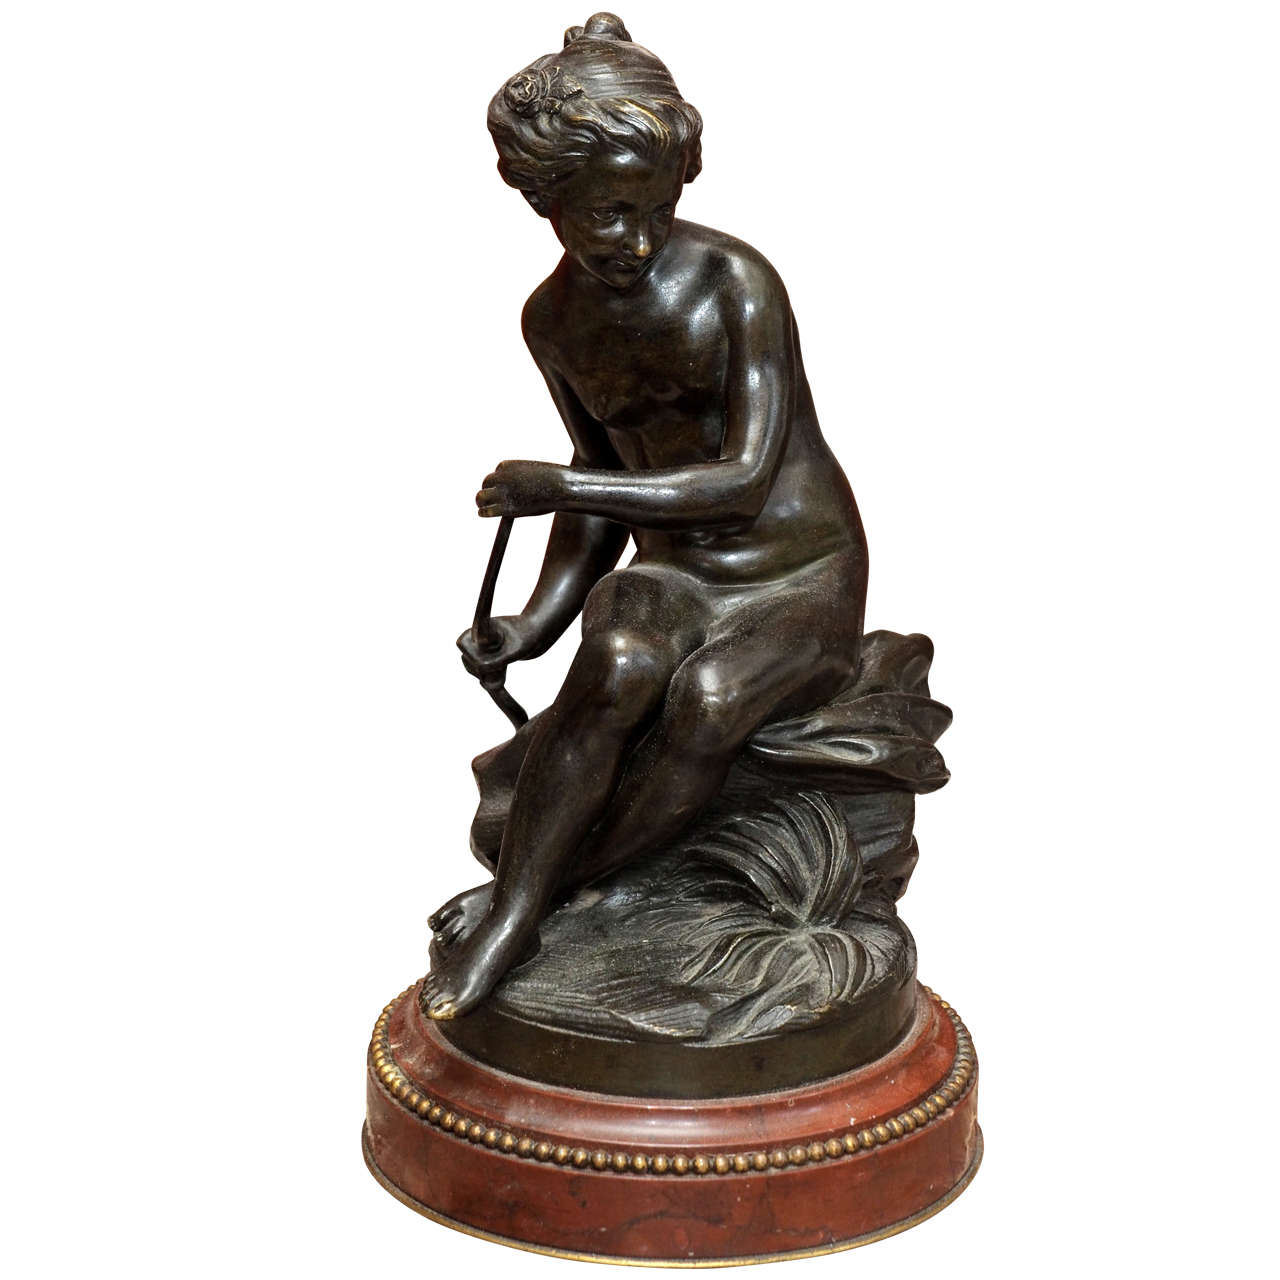 French Bronze of Diana the Huntress